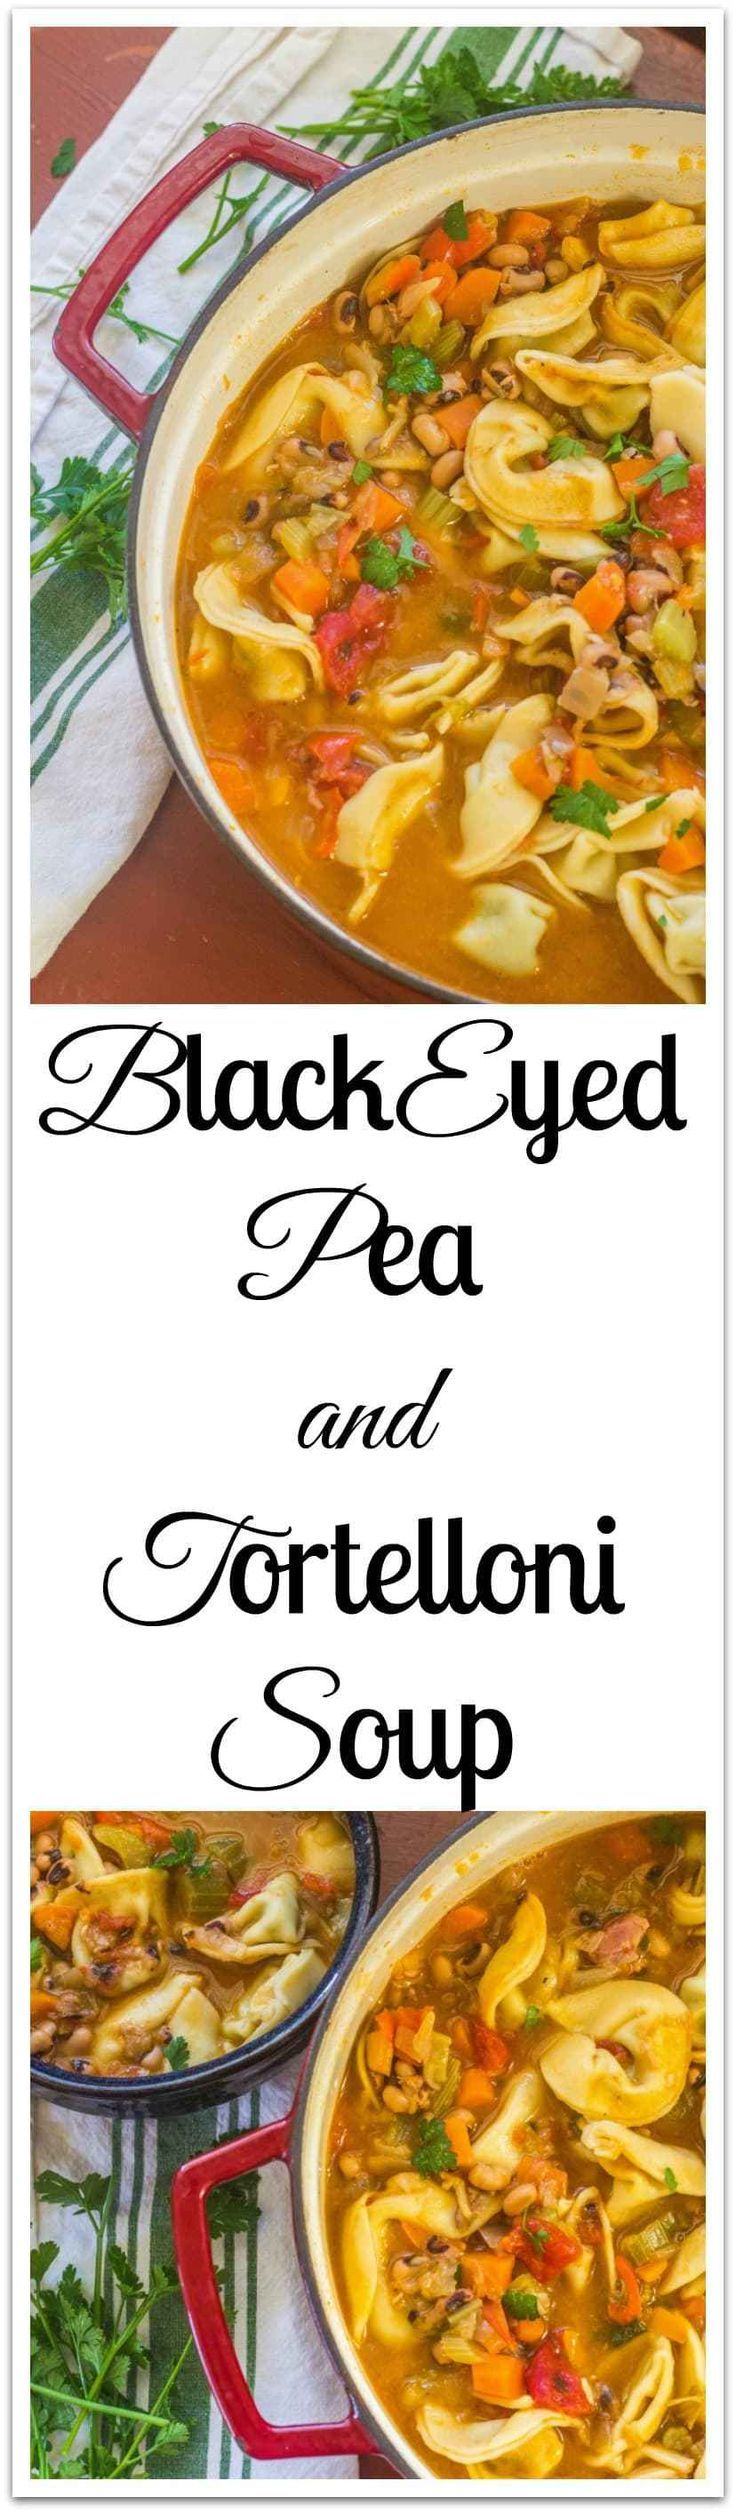 Black-eyed Pea and Tortelloni Soup. Chock full of vegetables, black-eye peas and tortelloni filled with ricotta cheese and spinach. A  quick-fix meal.